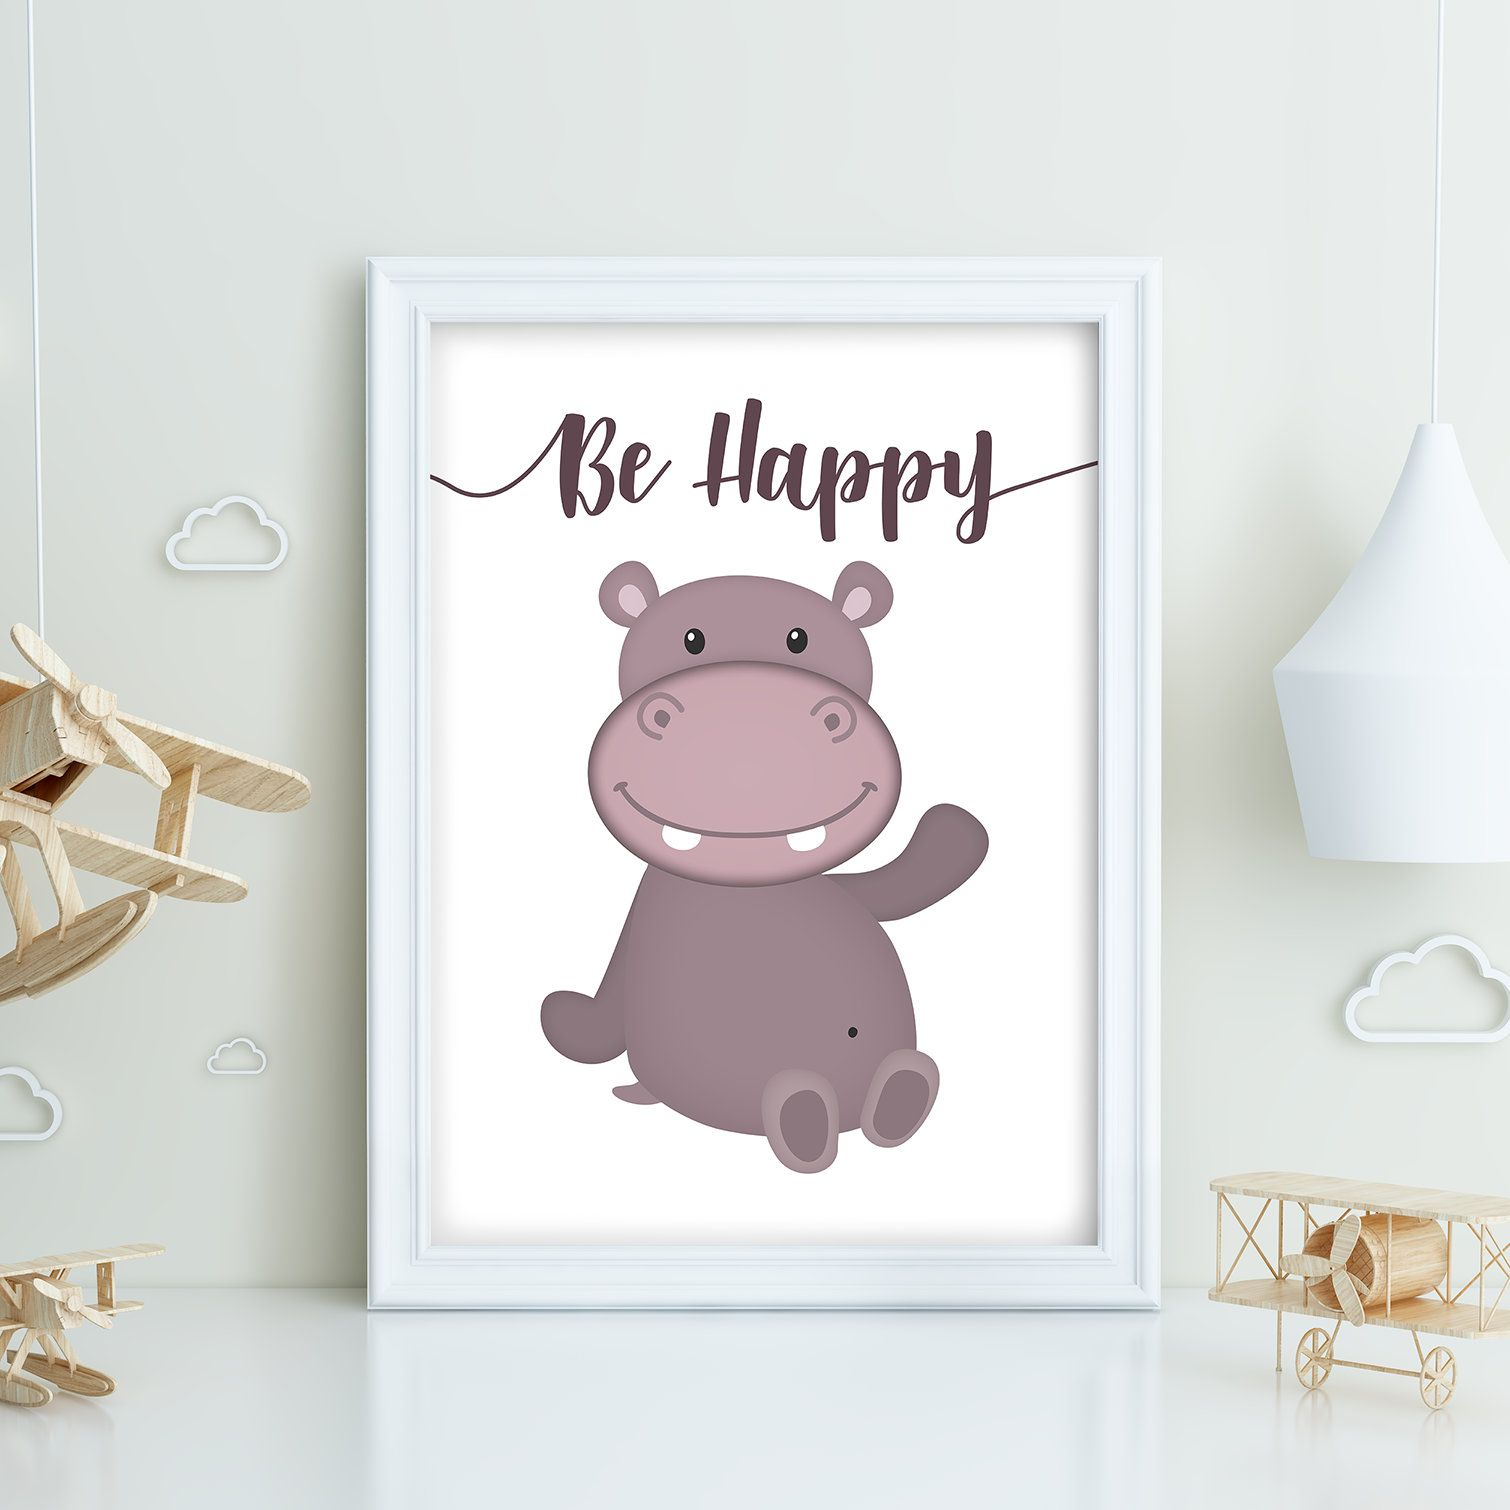 baby bedroom wall art on Purchase This A4 Or A3 Size Printed Version Of The Happy Hippo At Www Splashseven Etsy Com Smiley Hipp Childrens Wall Art Kids Bedroom Decor Bedroom Wall Art